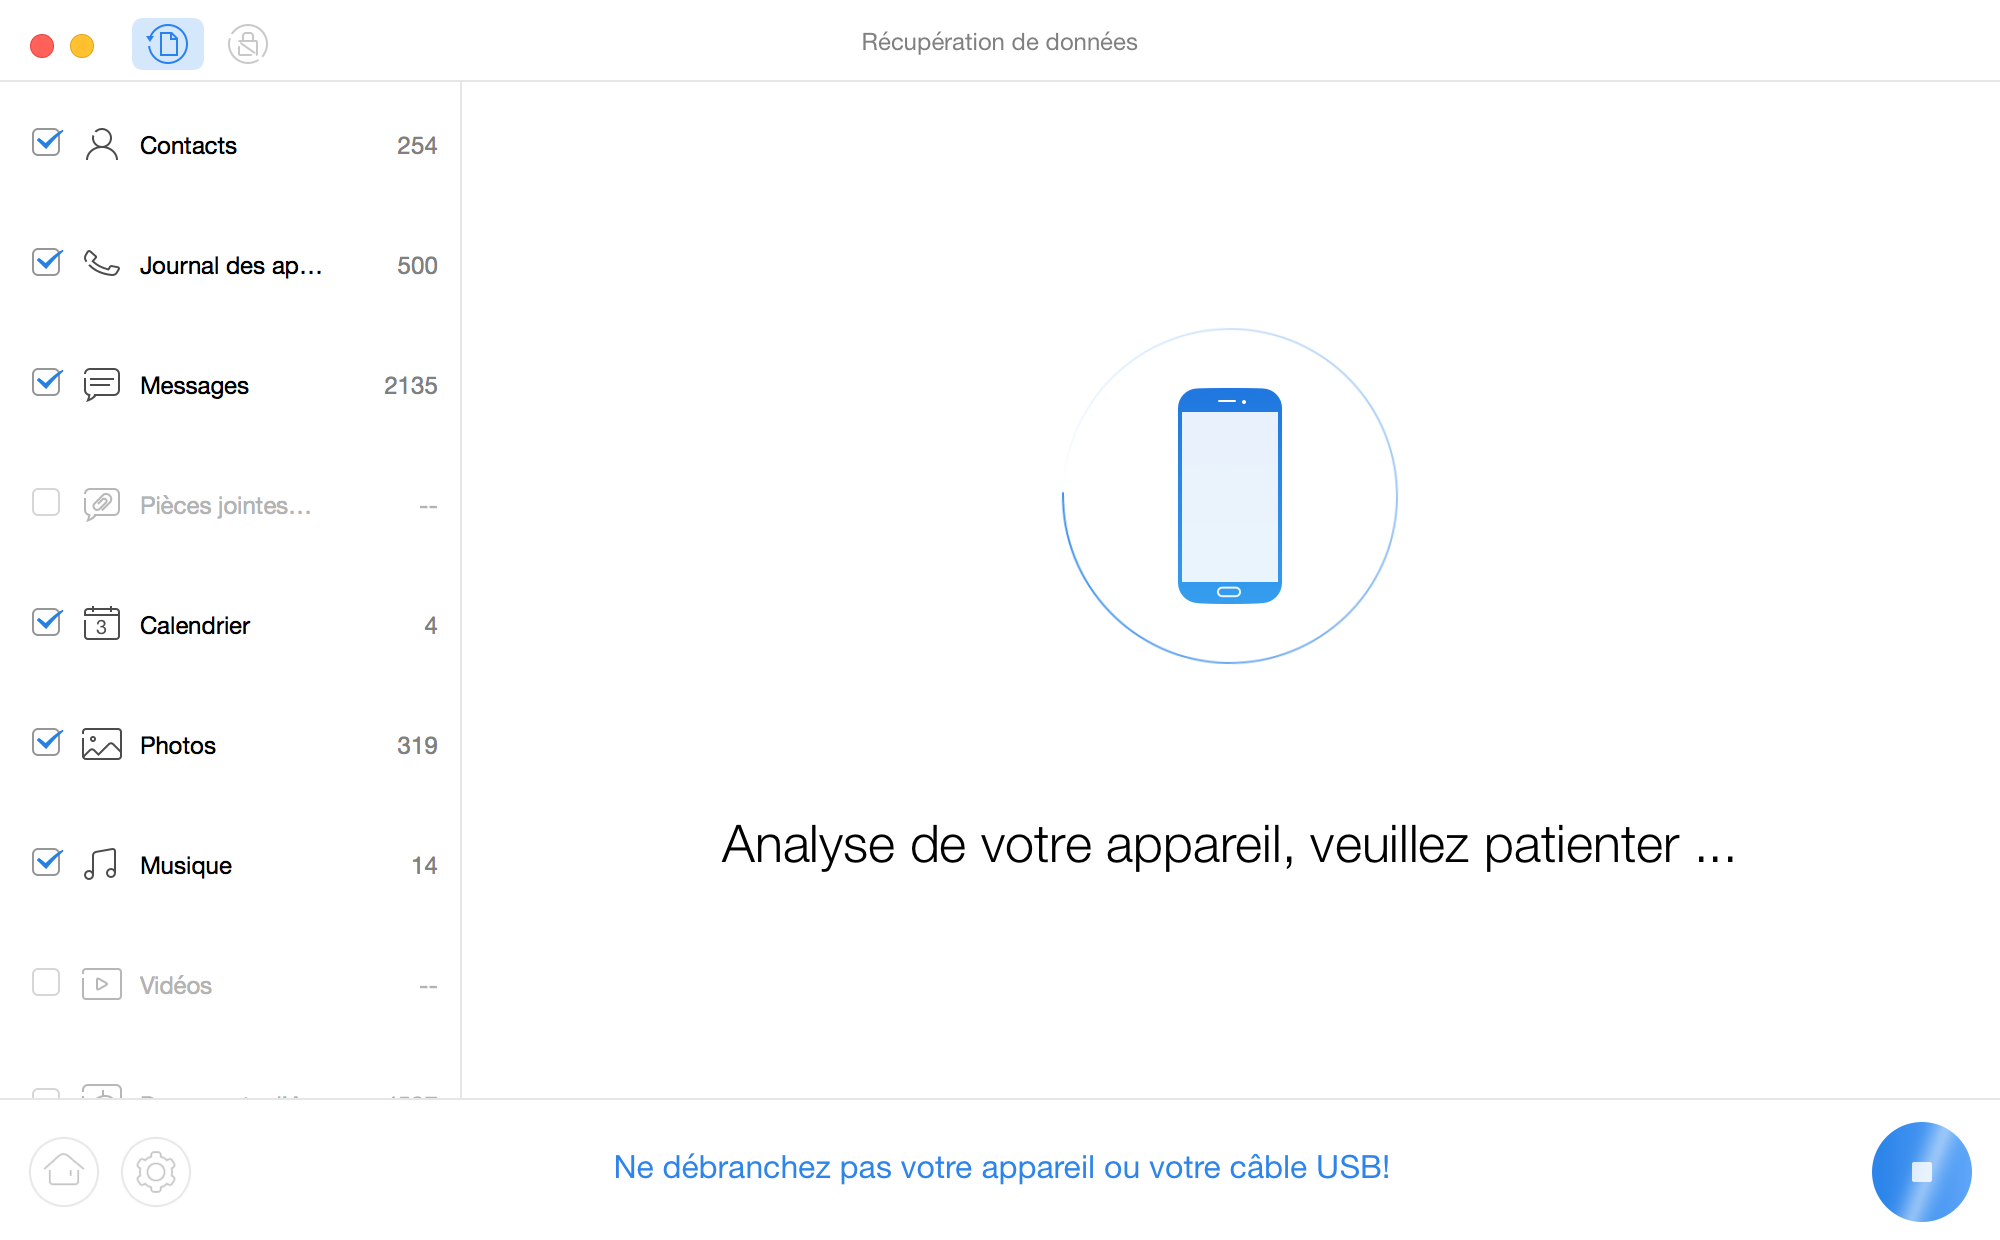 Attendez le processus d'analyse